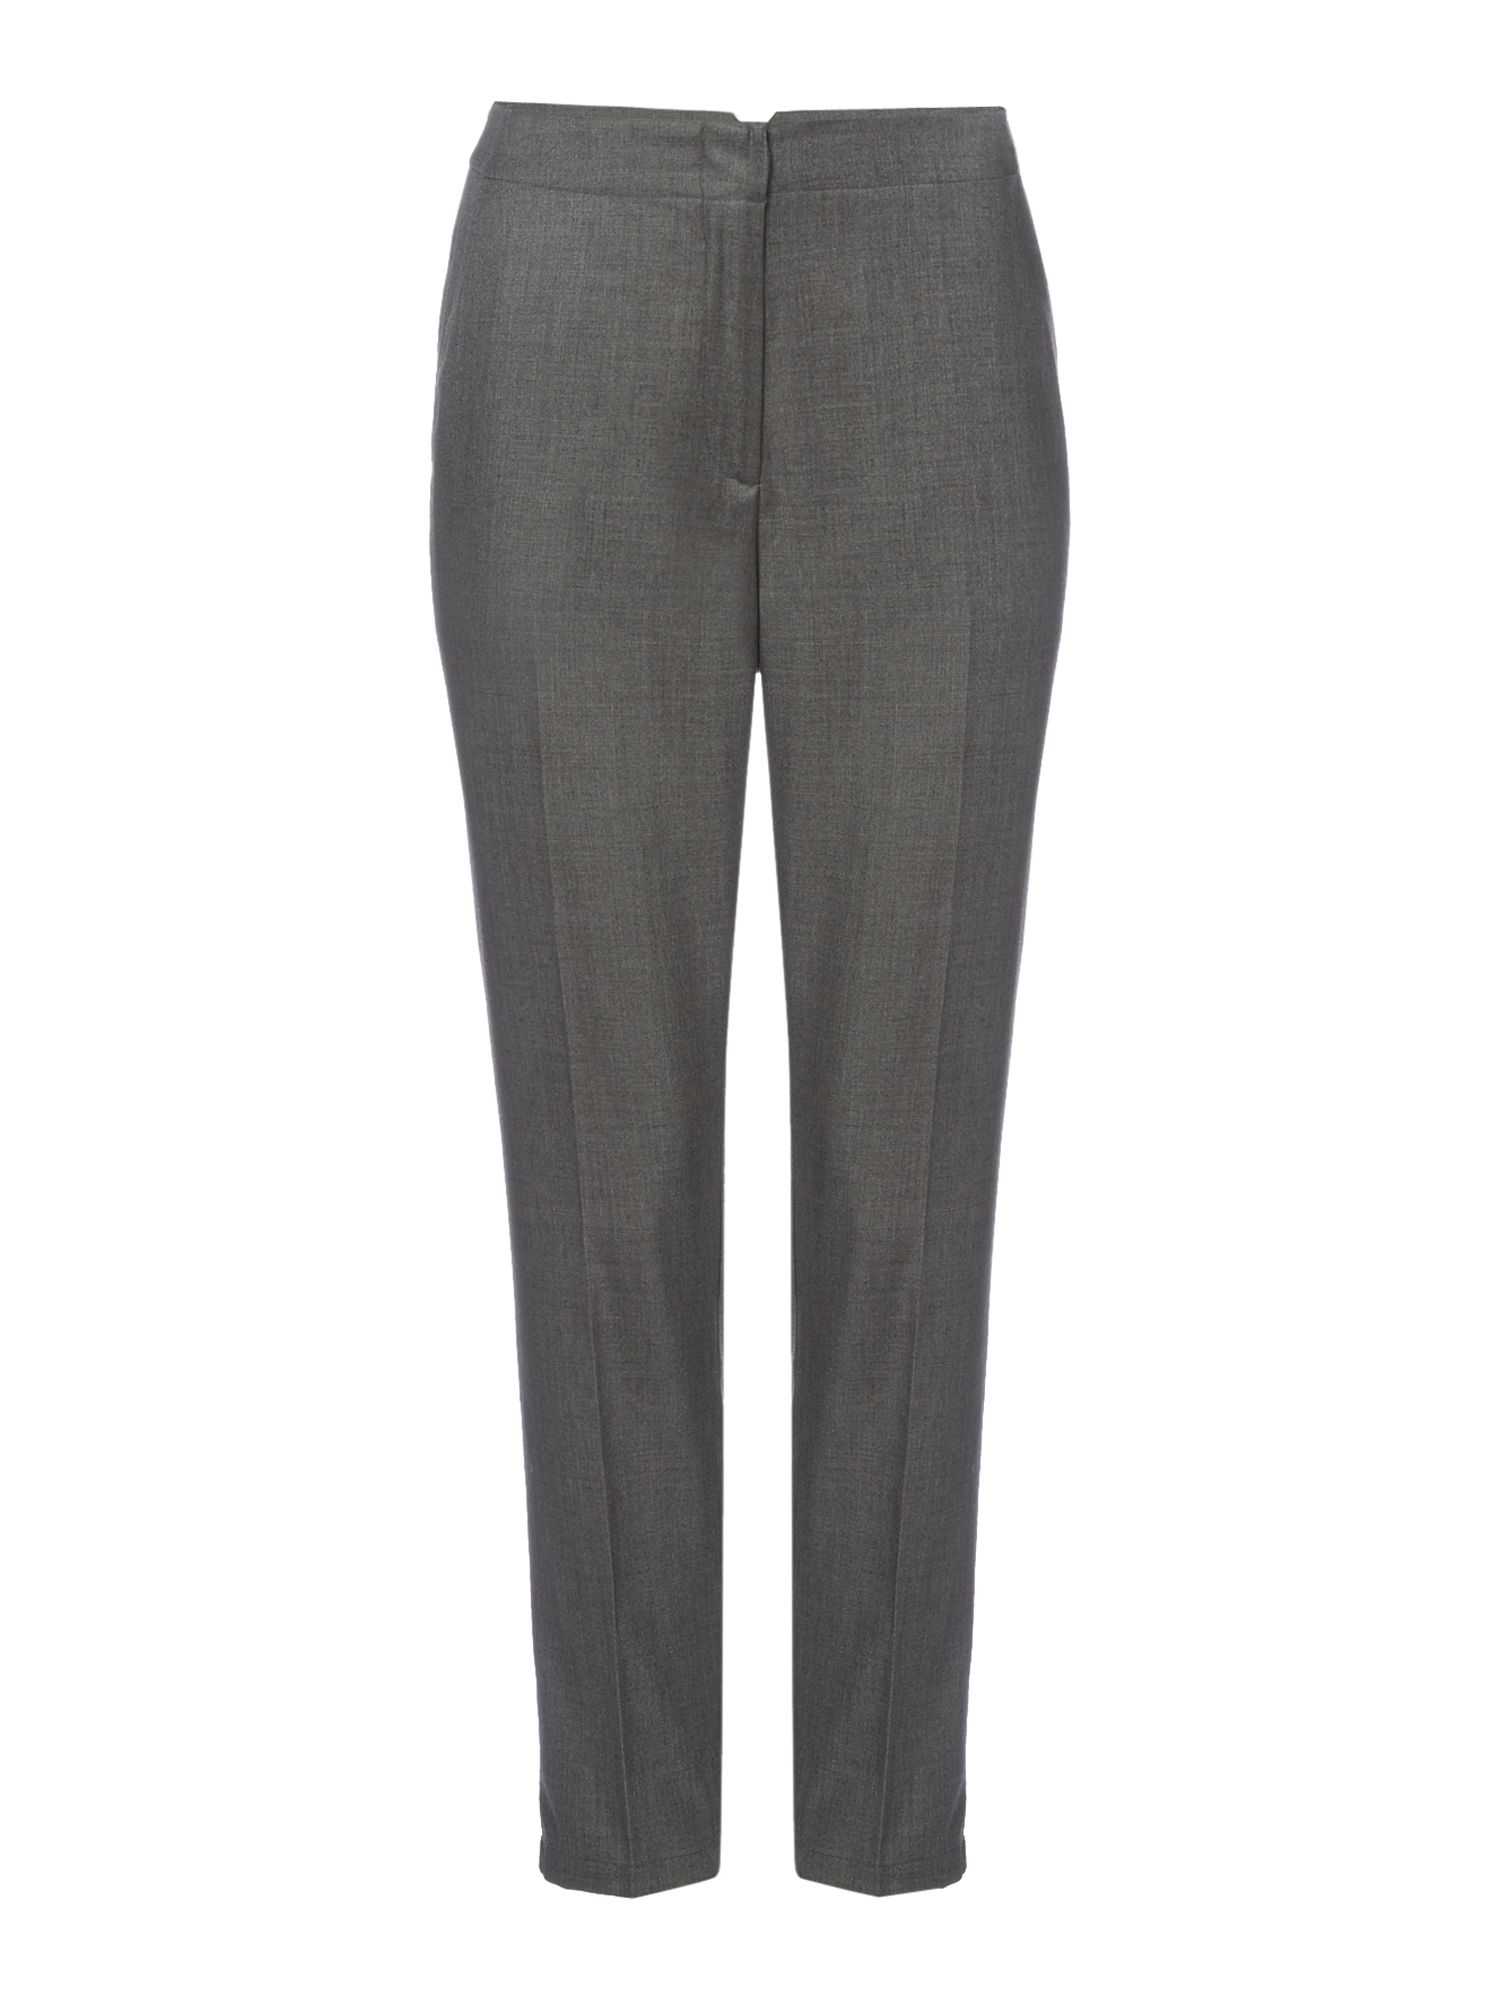 Another Label Danielle grey trousers, Grey